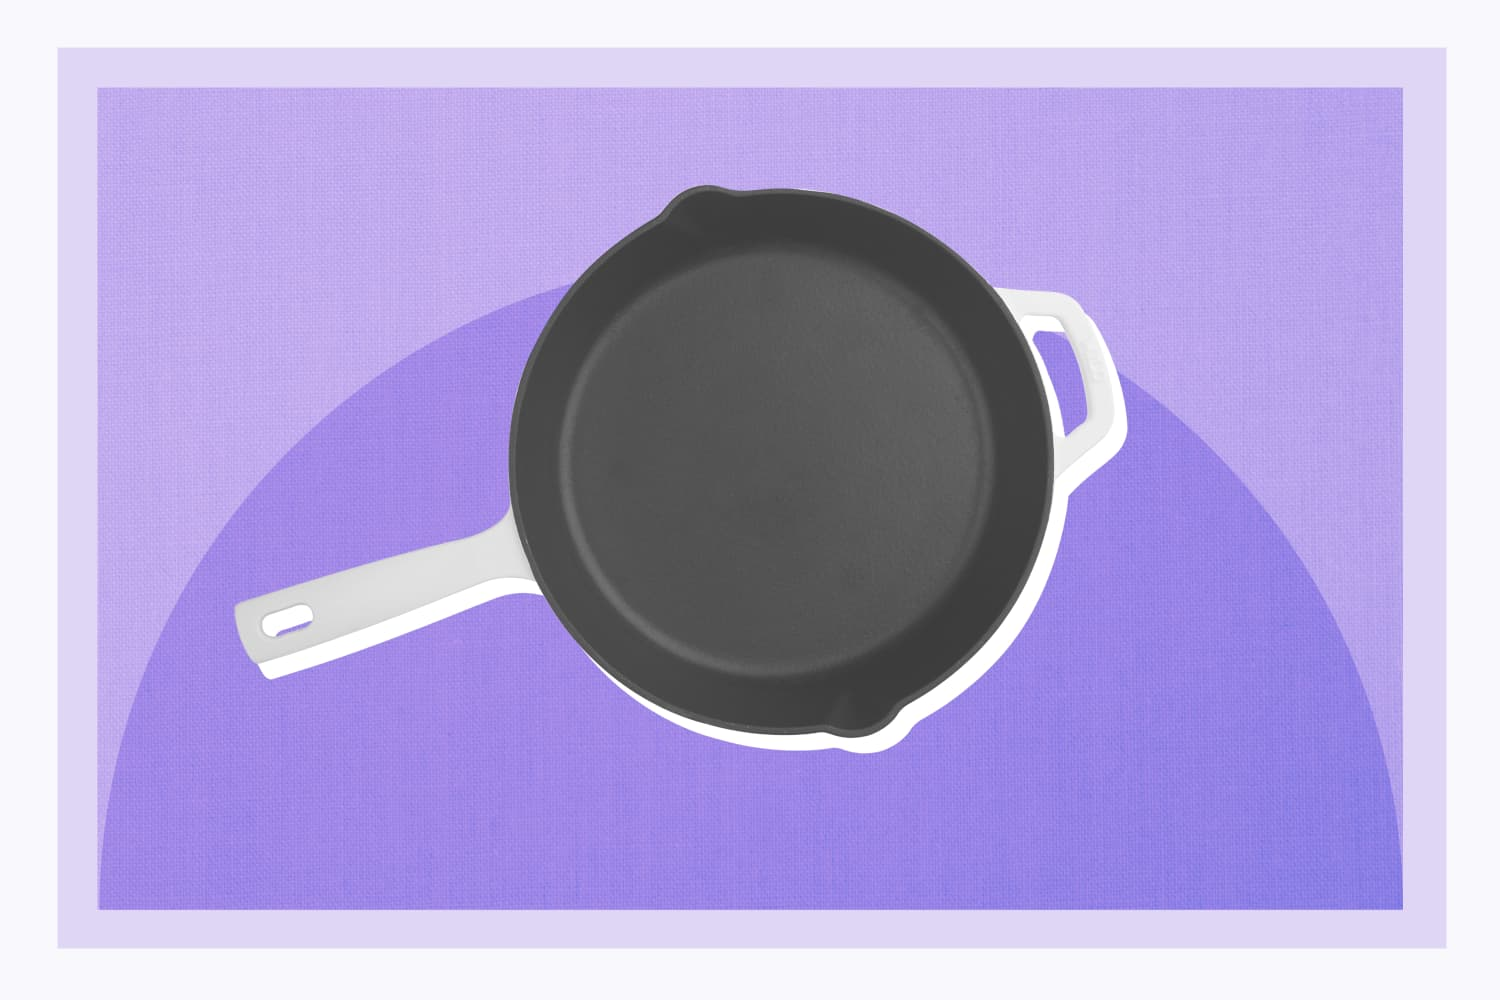 The Small Cookware Brand That Makes One of Our Favorite Dutch Ovens Just Launched a New Skillet